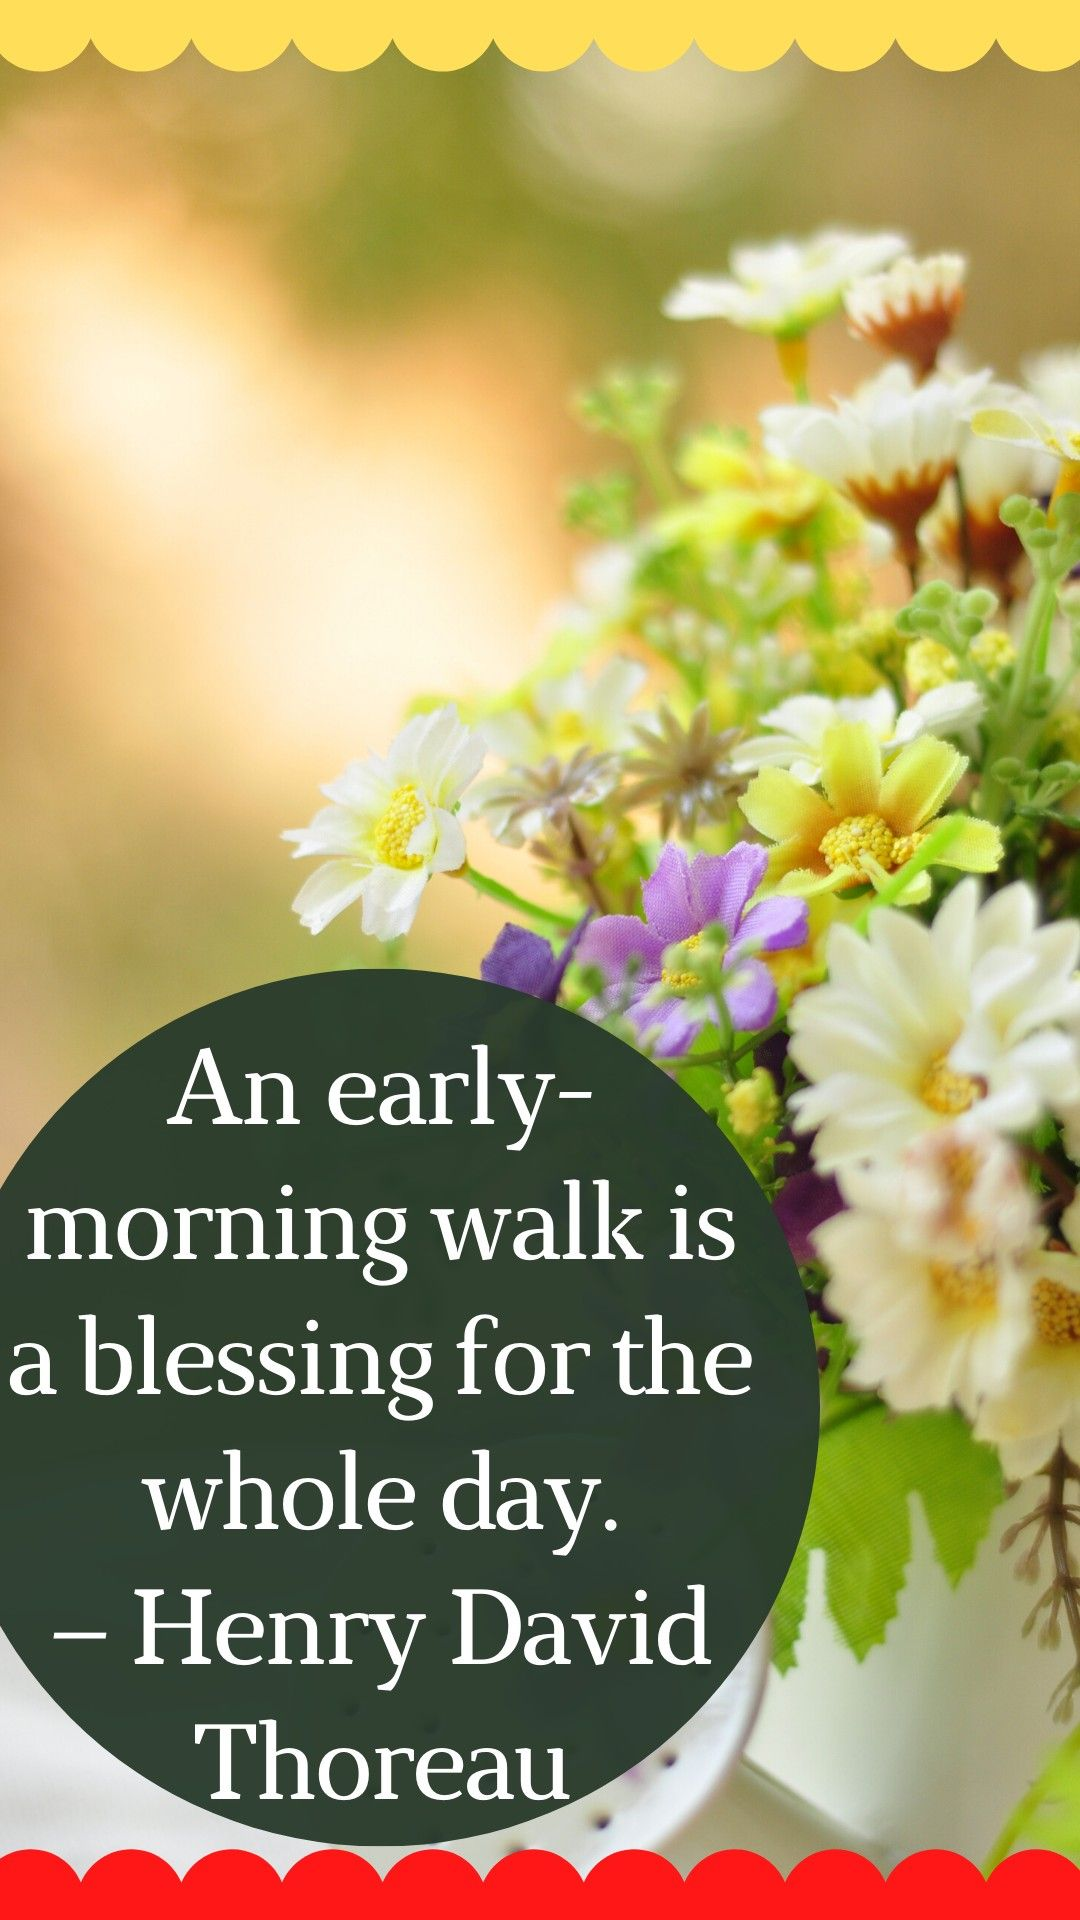 An early-morning walk is a blessing for the whole day. – Henry David Thoreau